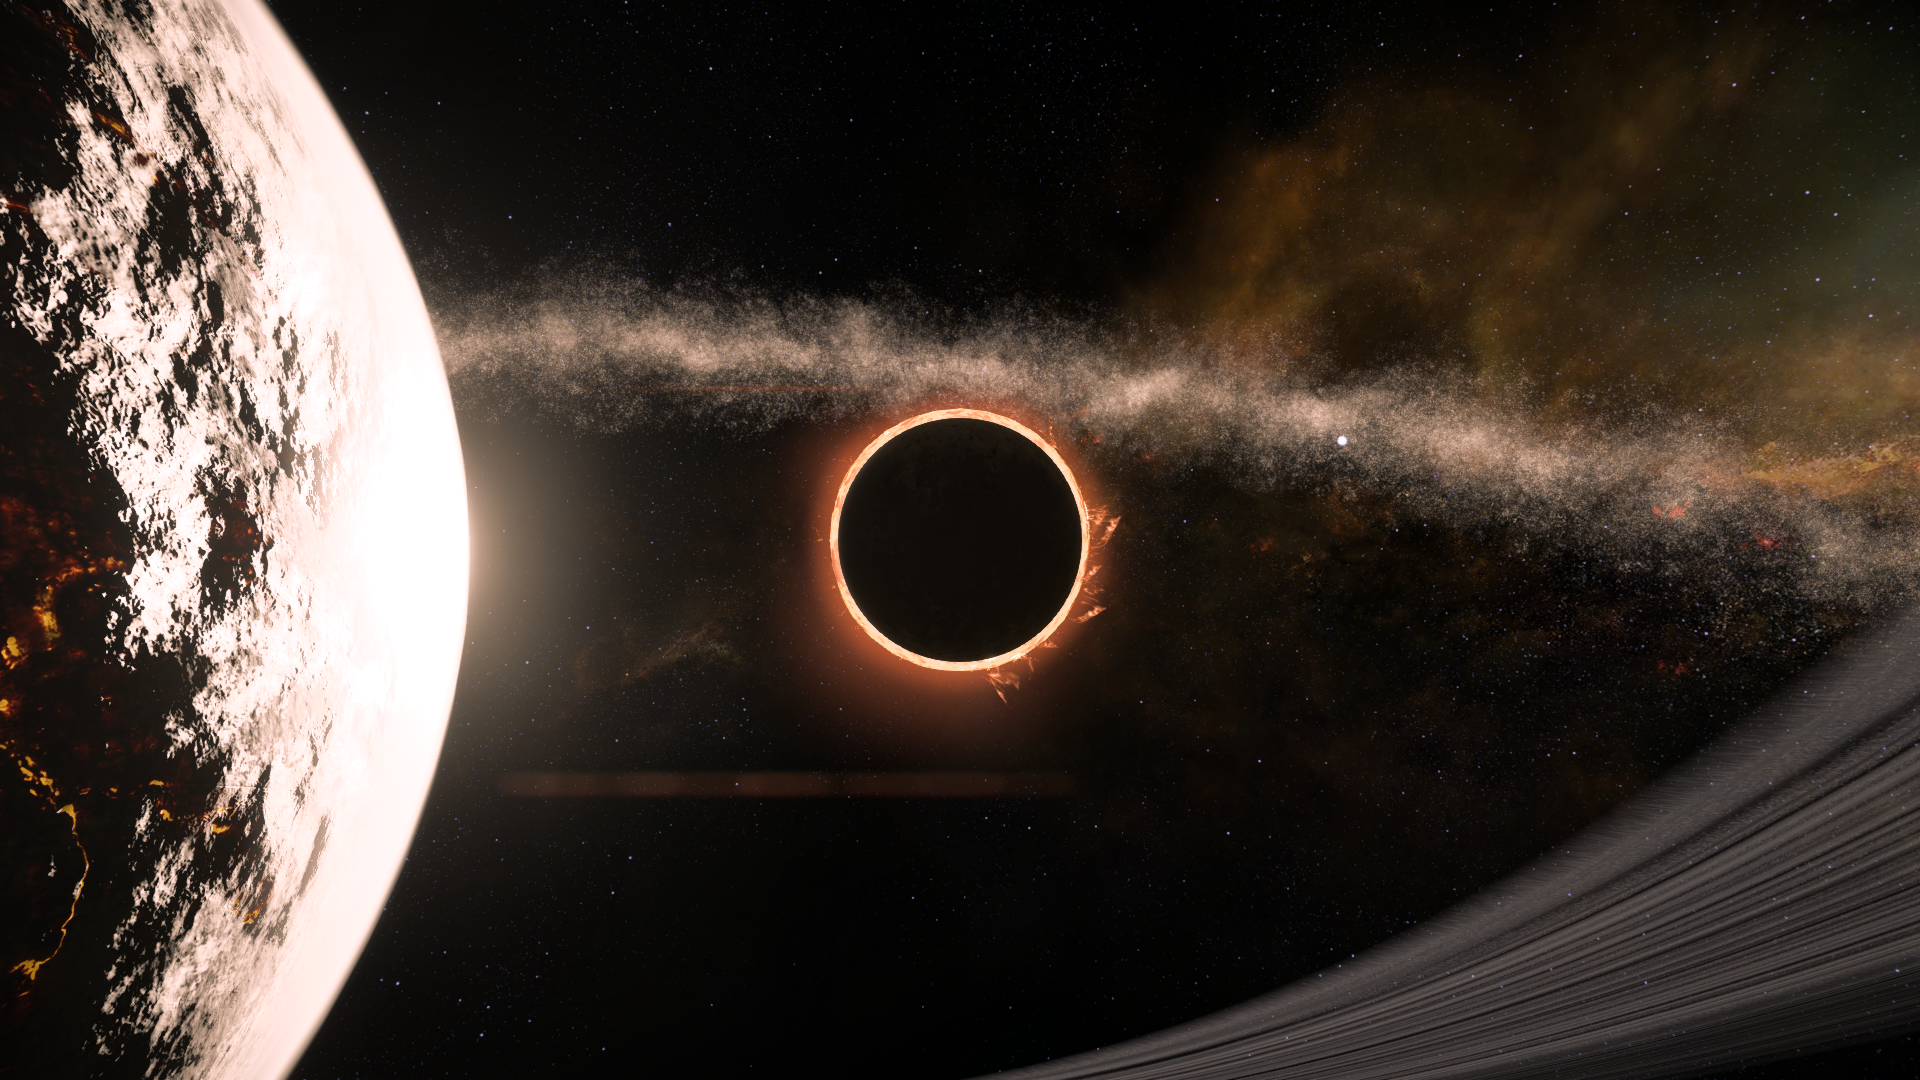 Mass-Effect-Andromeda-Eclipse-1920x1080-OC-bonus-in-comments-wallpaper-wpc5807054